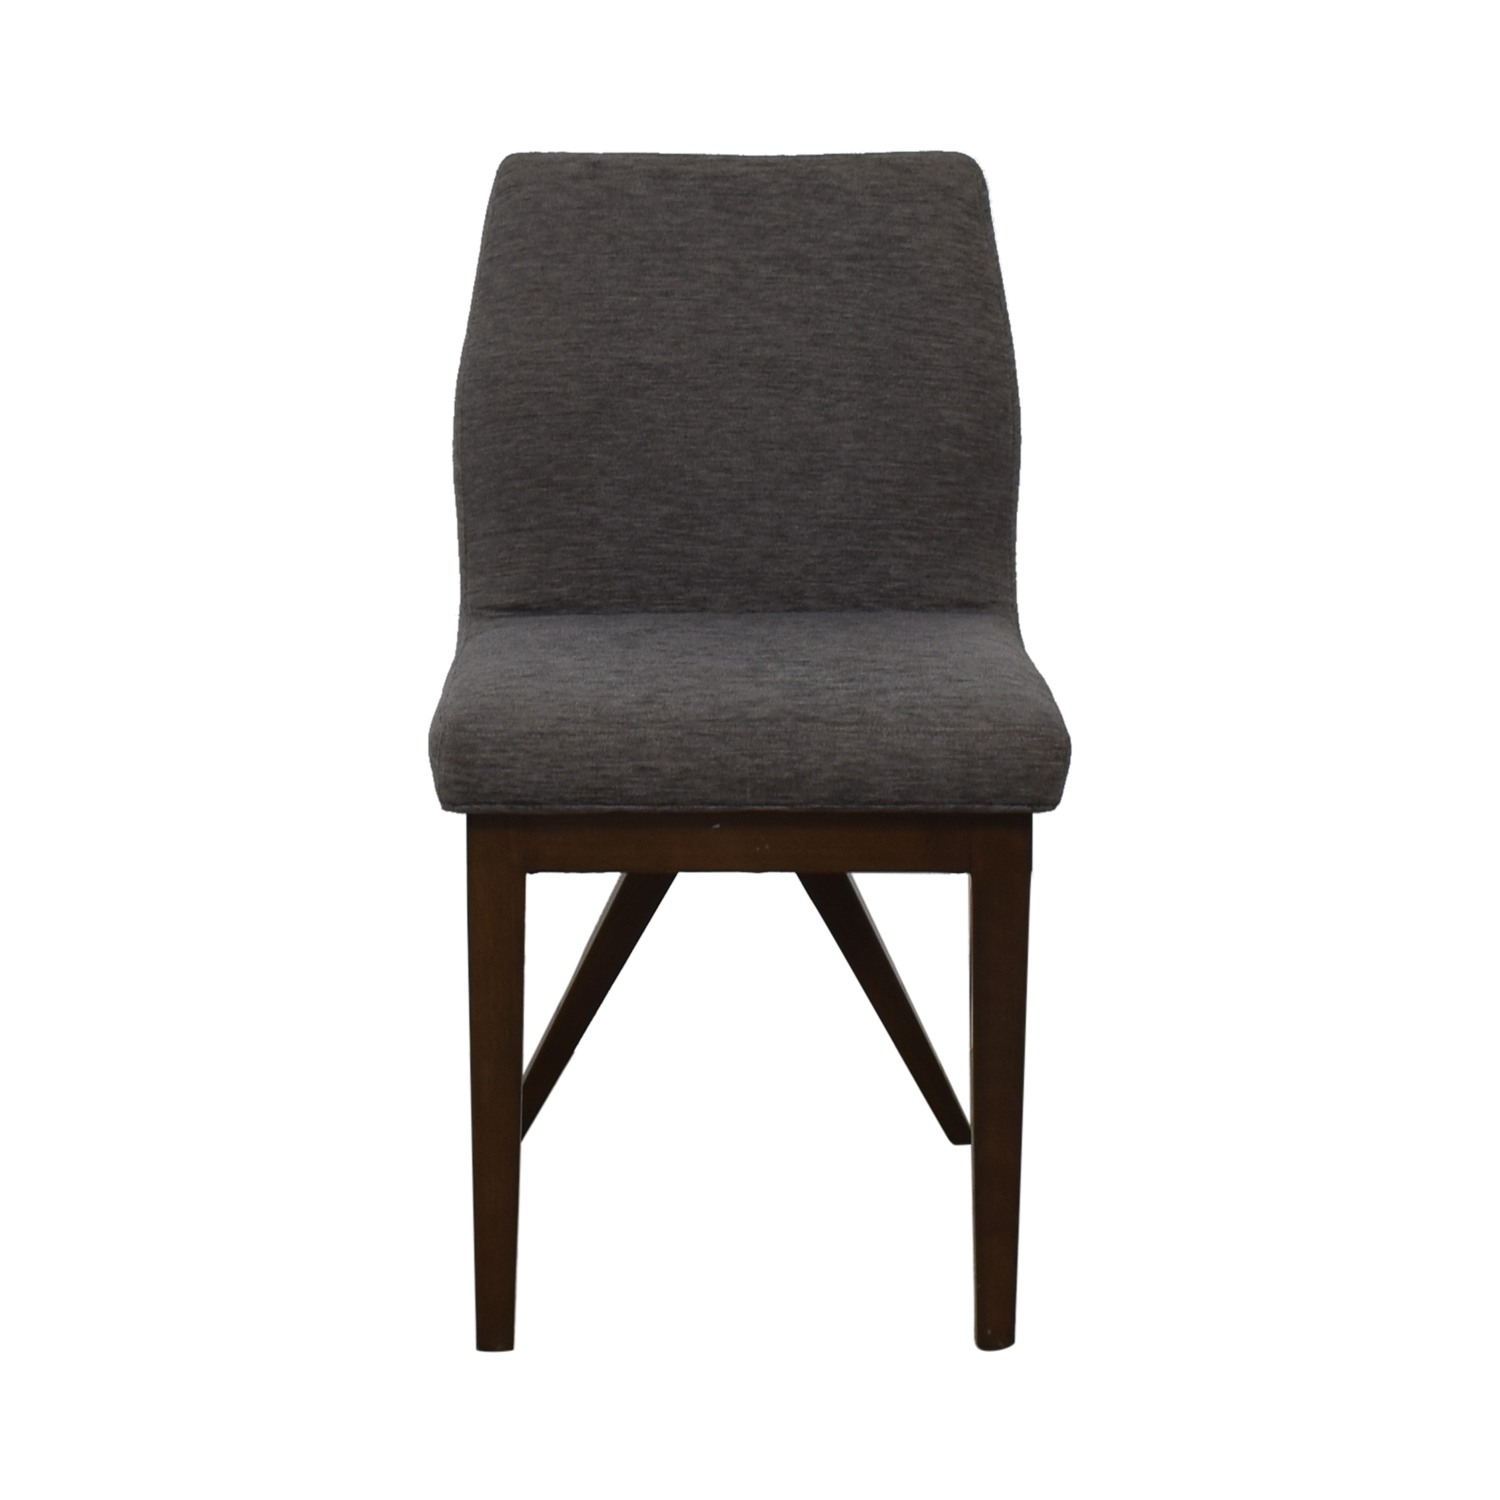 Furniture Masters Furniture Masters Mid Century Gray Chair